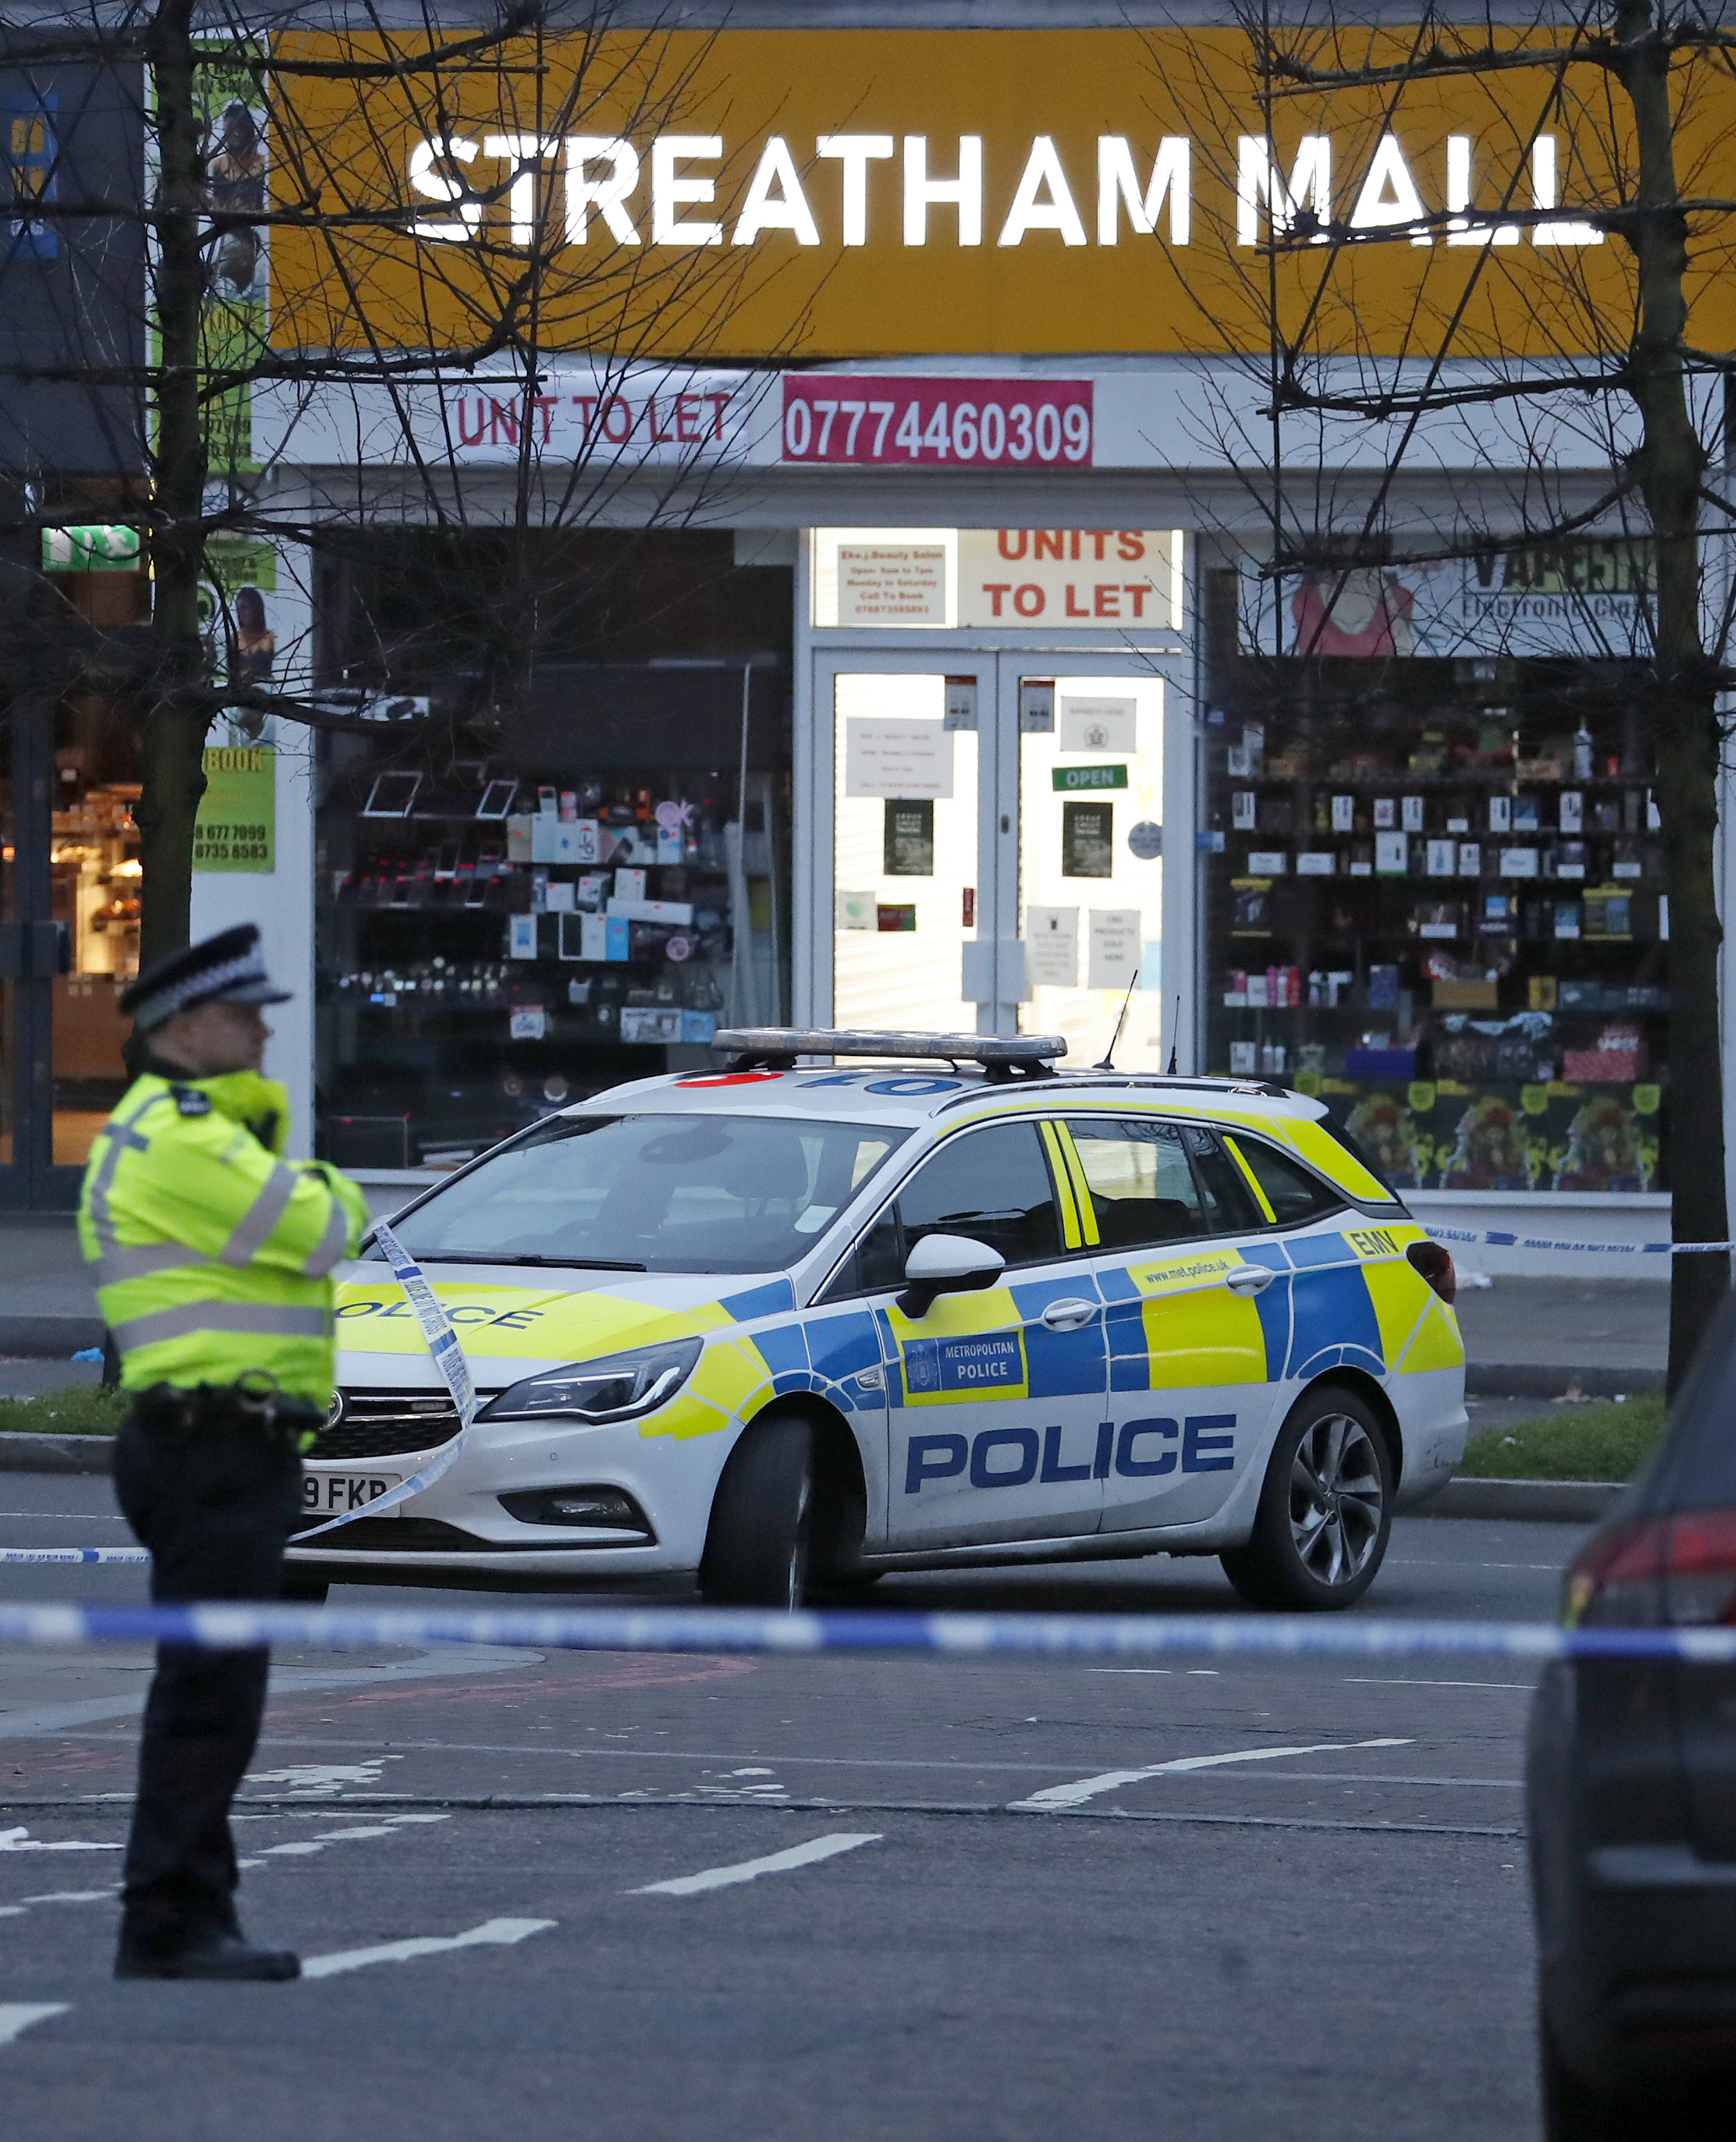 Police secure the area in Streatham London, England,  after a stabbing incident.